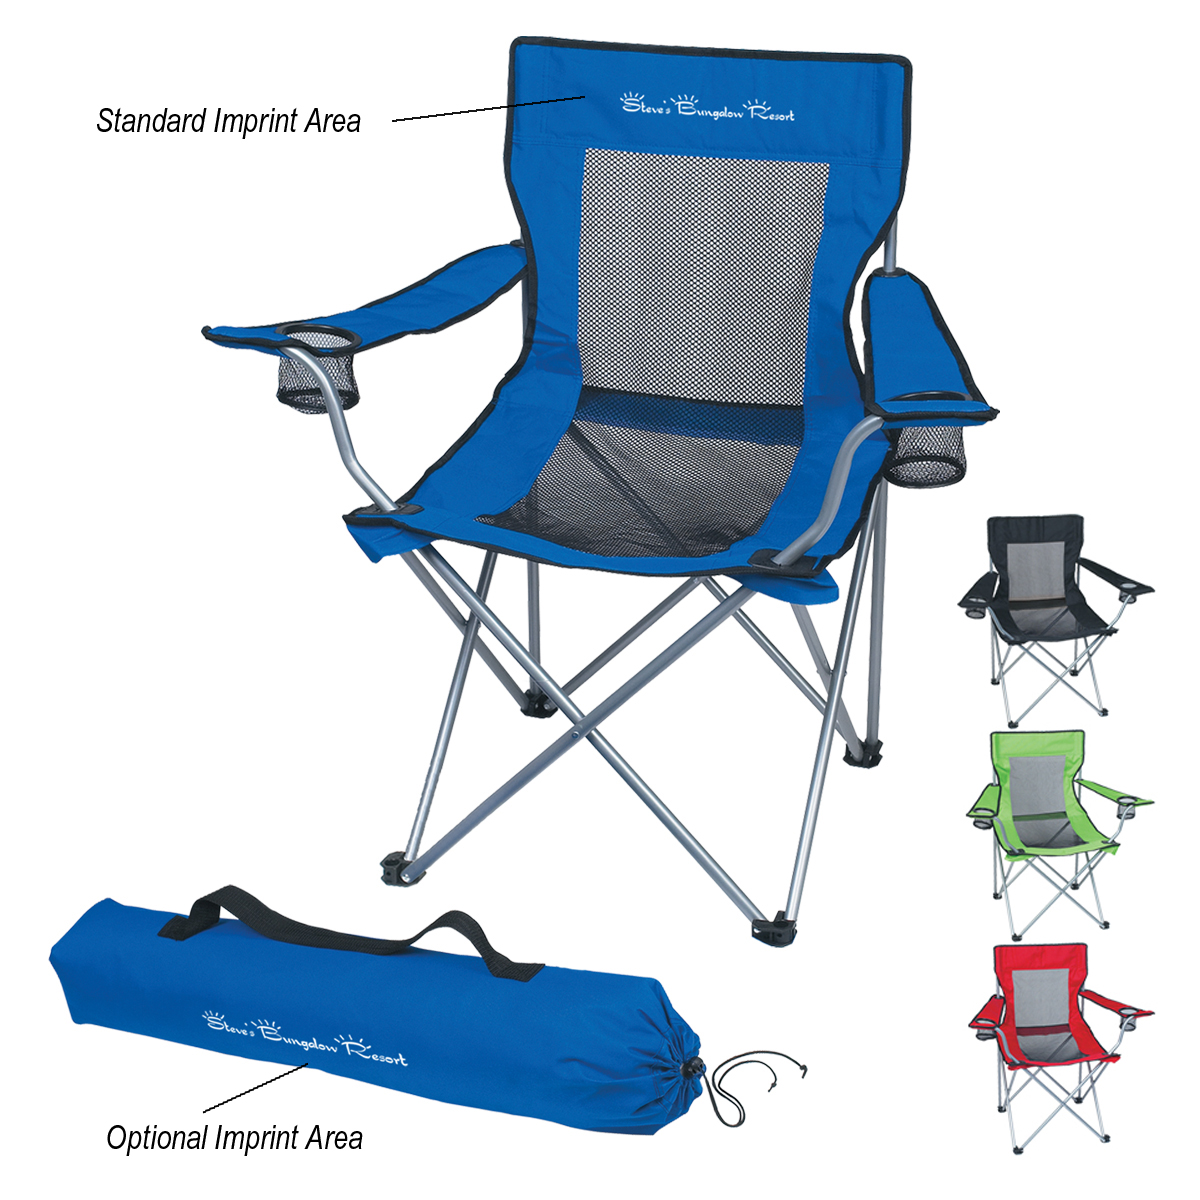 custom folding chairs shower chair or stool 7052 mesh with carrying bag